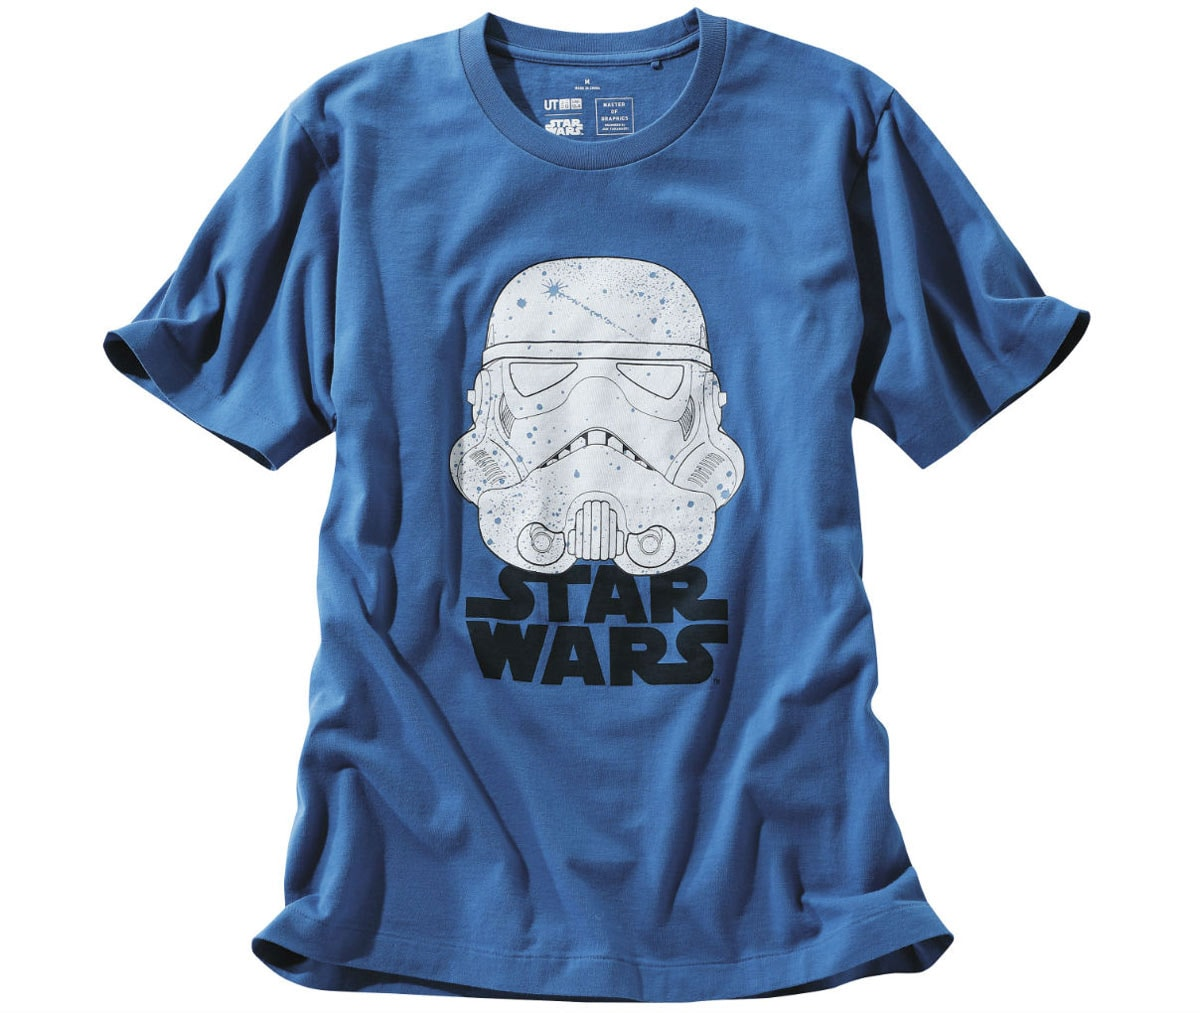 0a853c53 Uniqlo: New Star Wars t-shirt collection available from 29th April